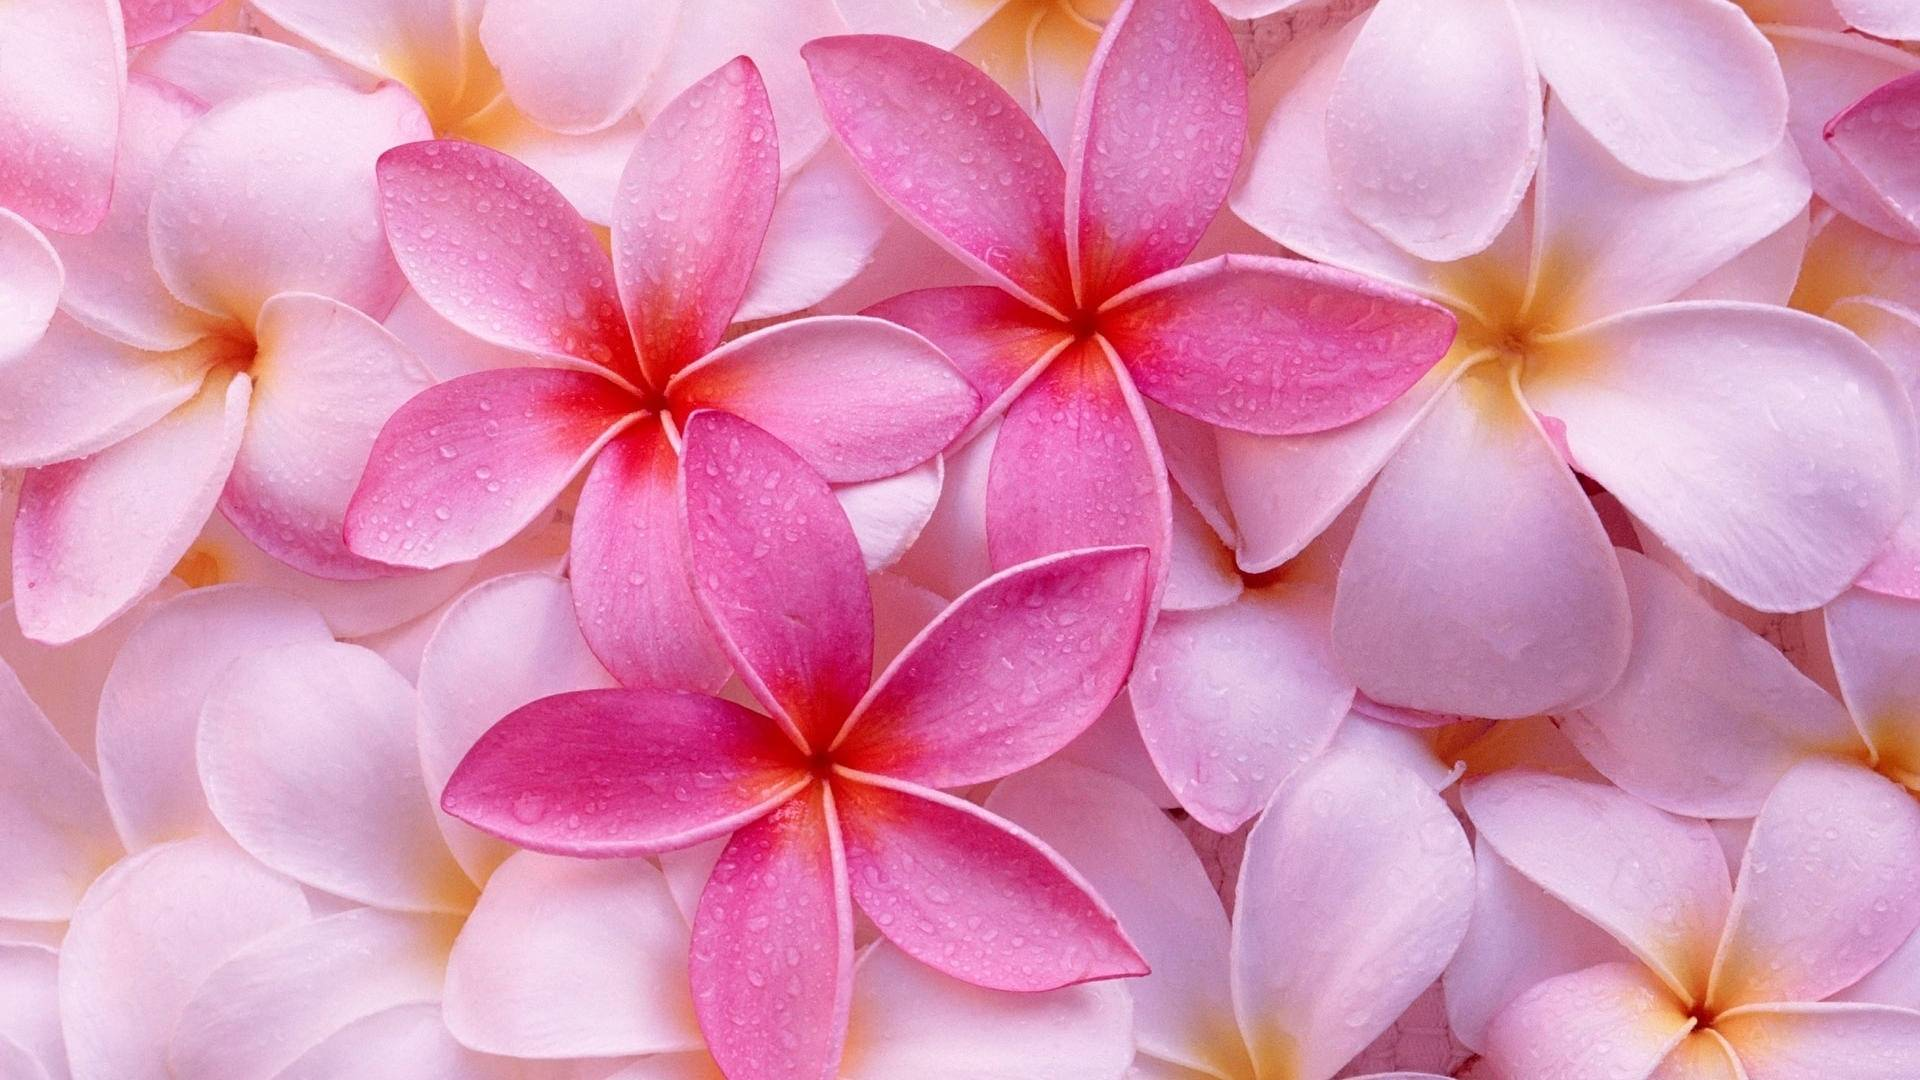 pink flowers hd wallpapers 20 cool wallpaper - hdflowerwallpaper